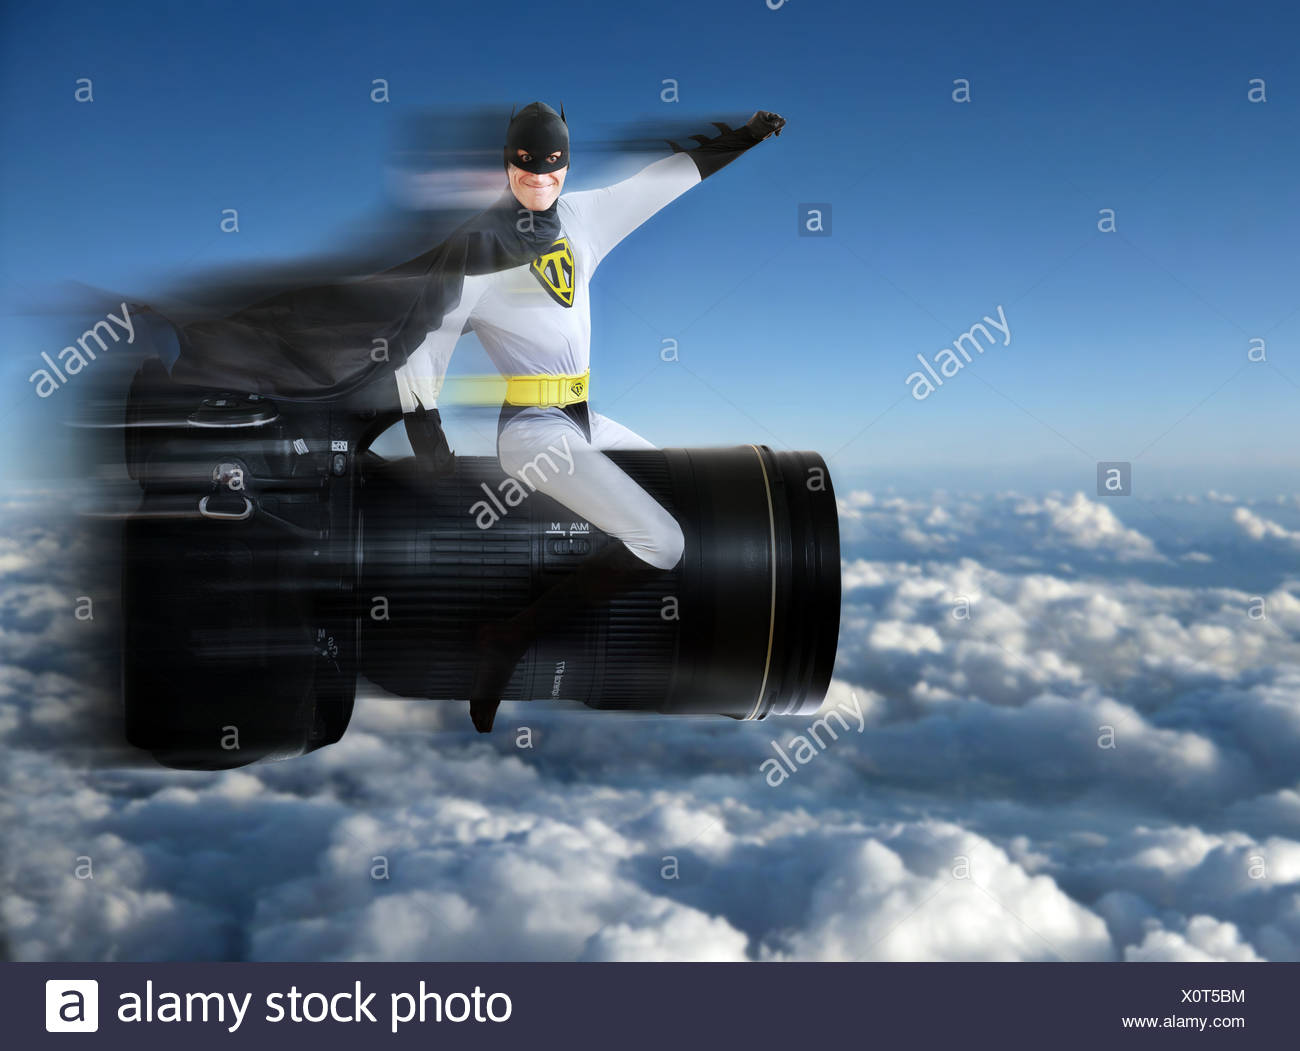 Super hero sitting on a camera and flying over the clouds - Stock Image